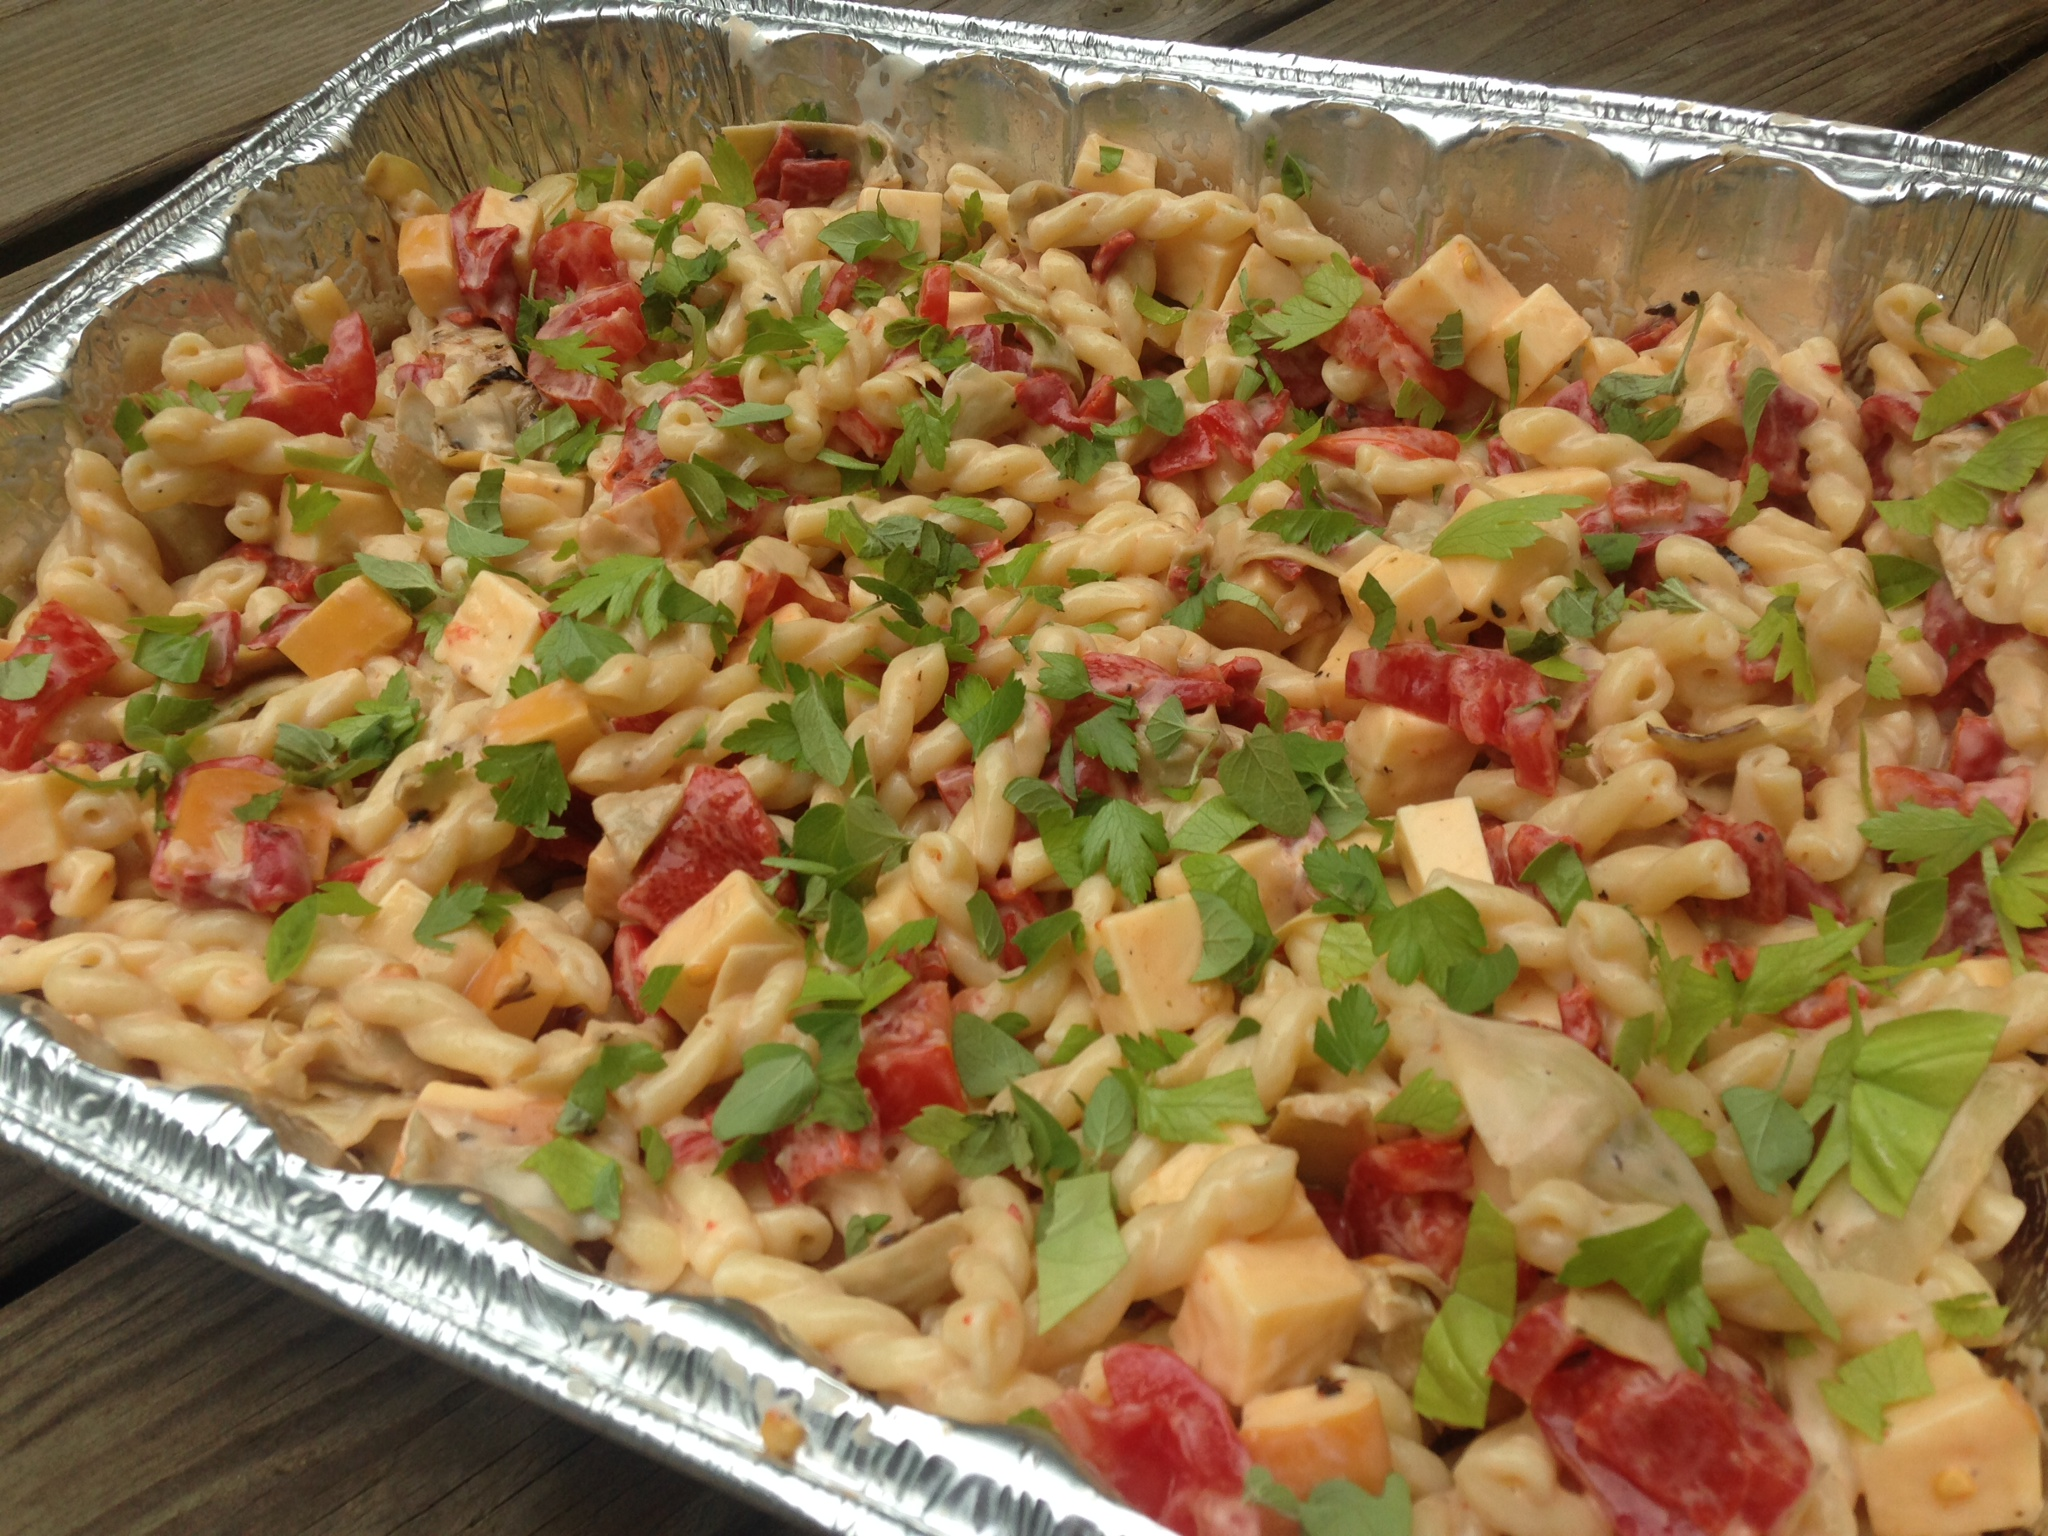 cold pasta salad with roasted red peppers